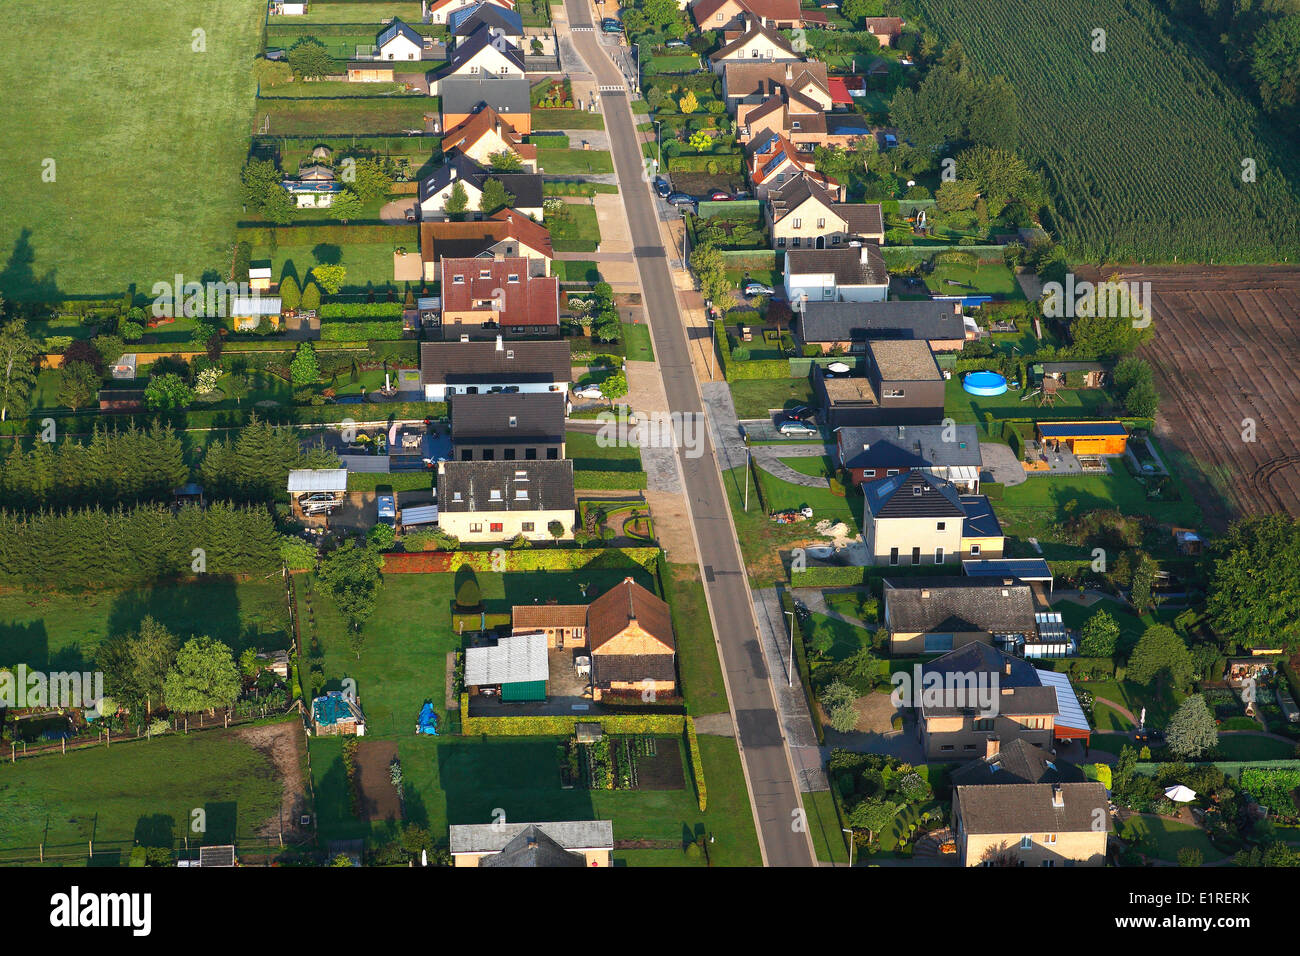 Urbanisation at the border of agricultural area with fields, grasslands and hedges, seen from the air, Belgium - Stock Image